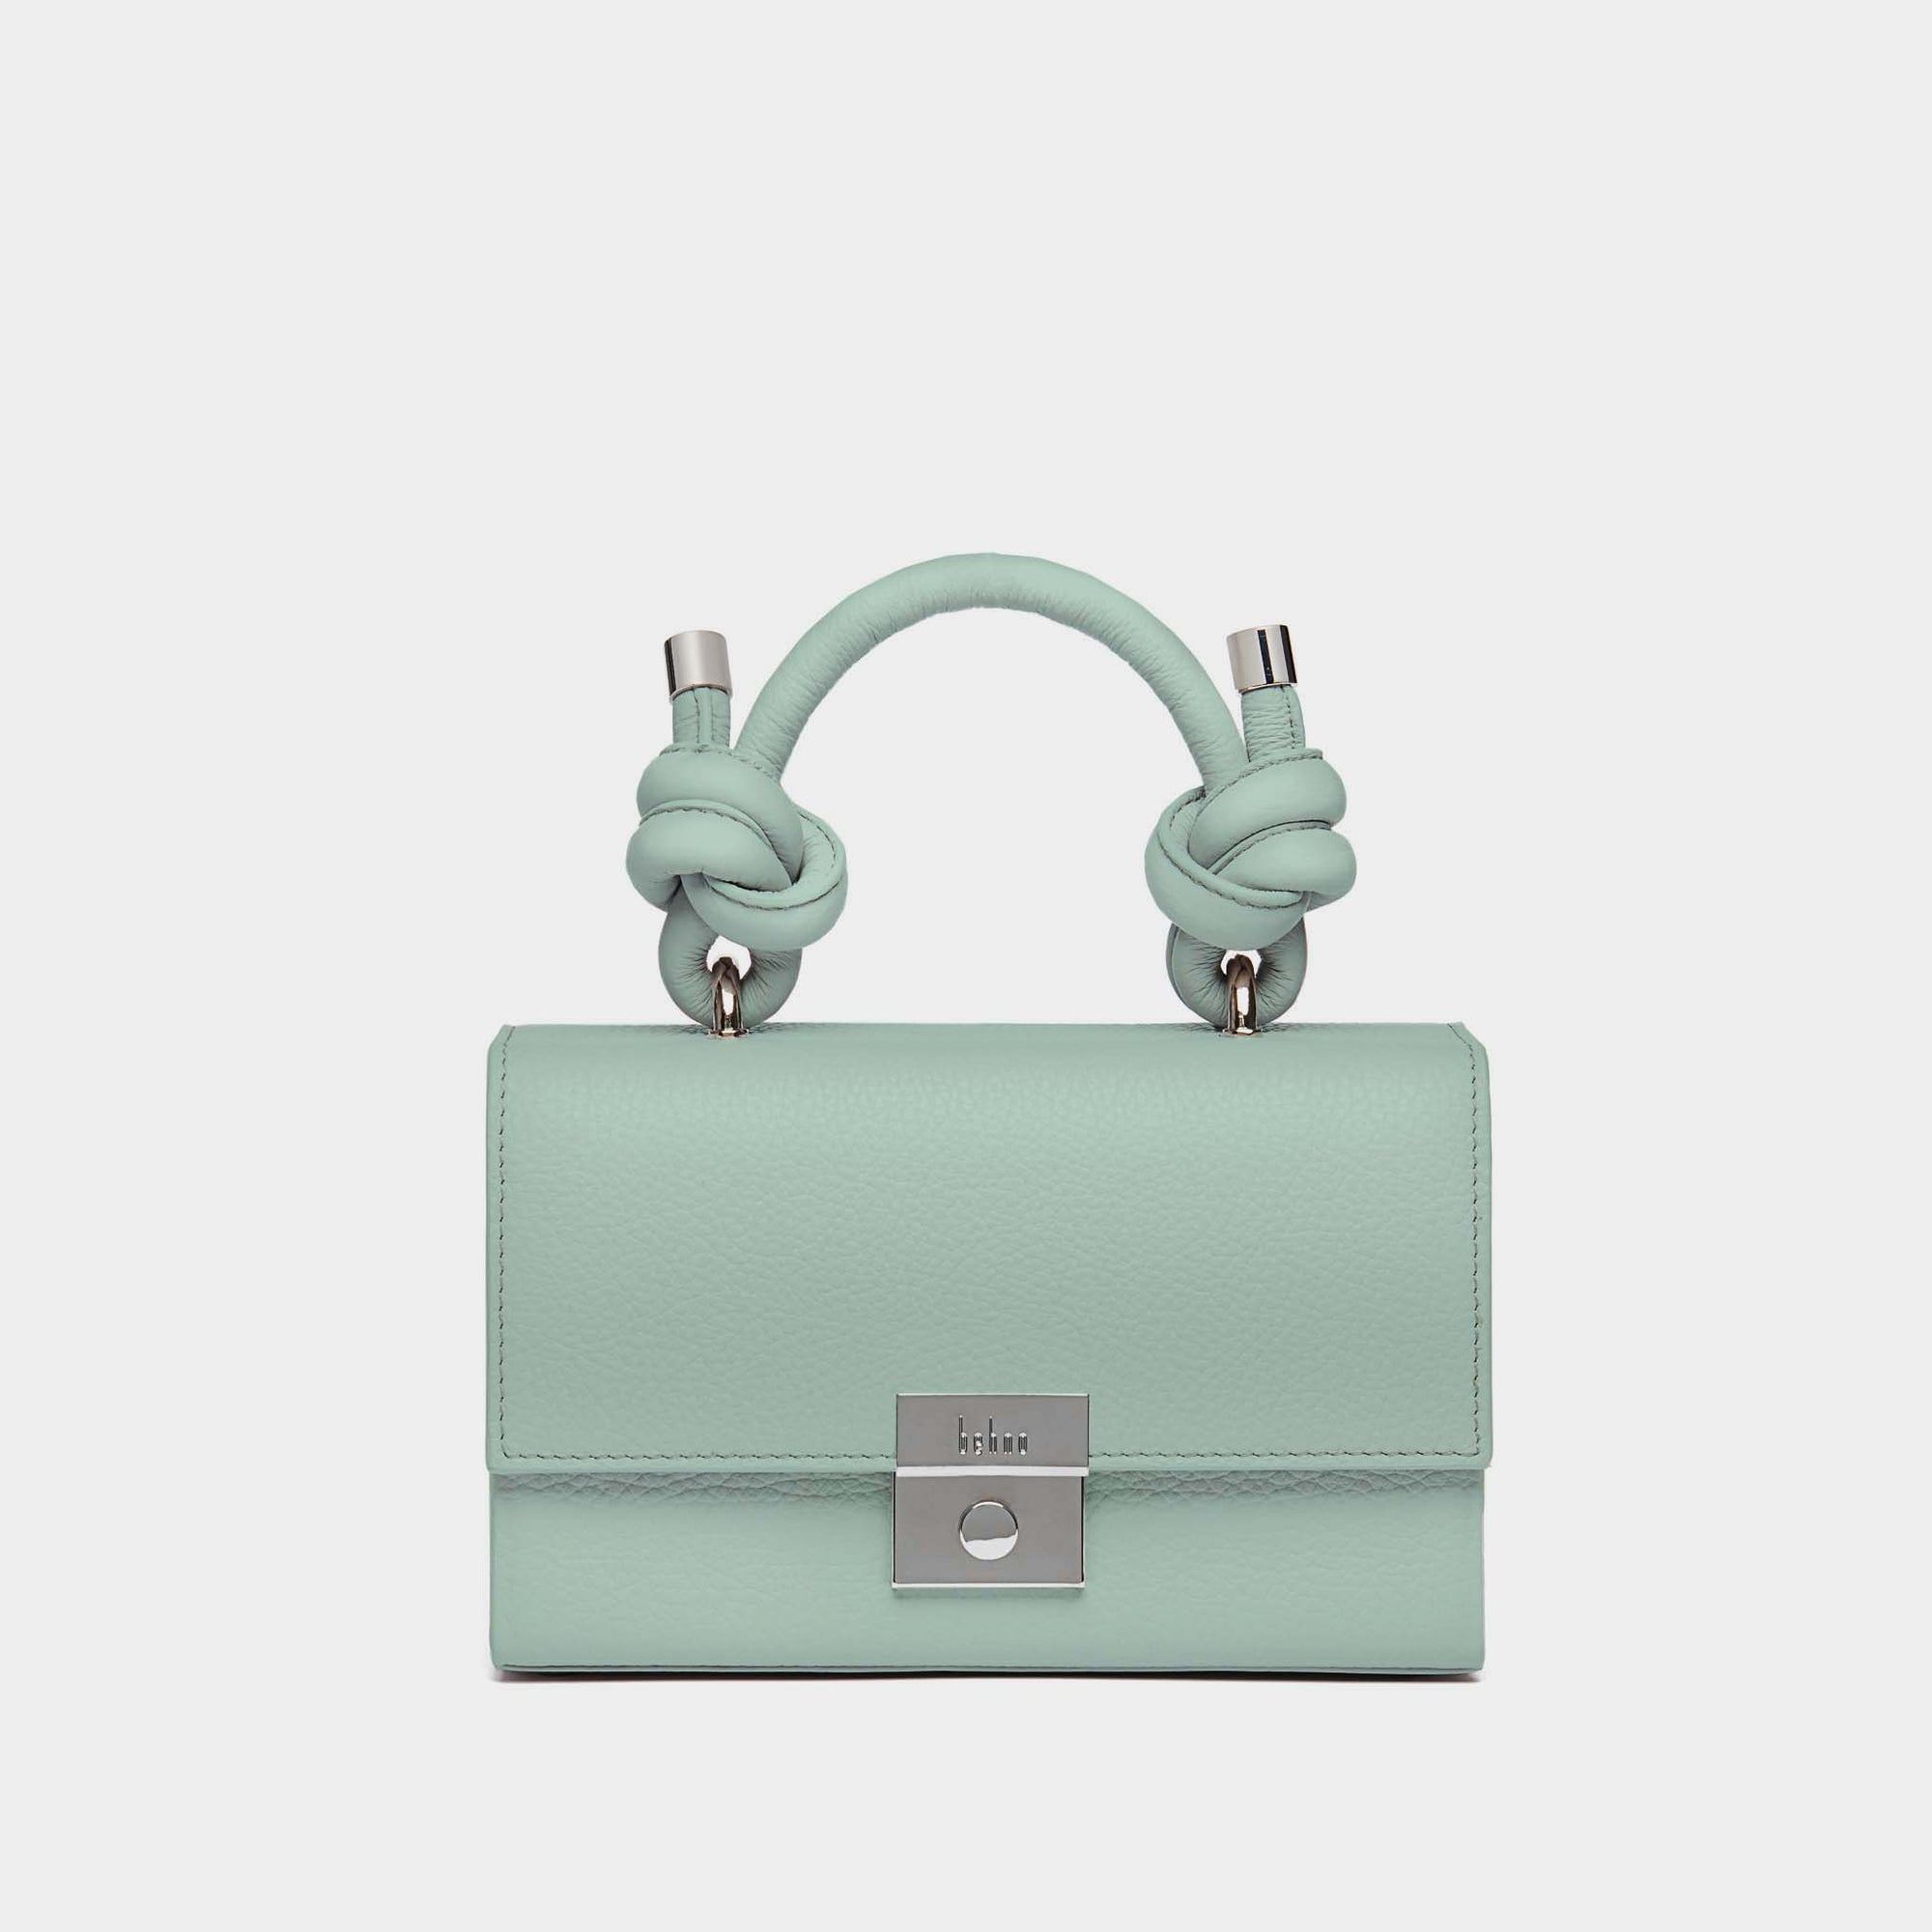 MARY BAG MINI PEBBLE SAGE